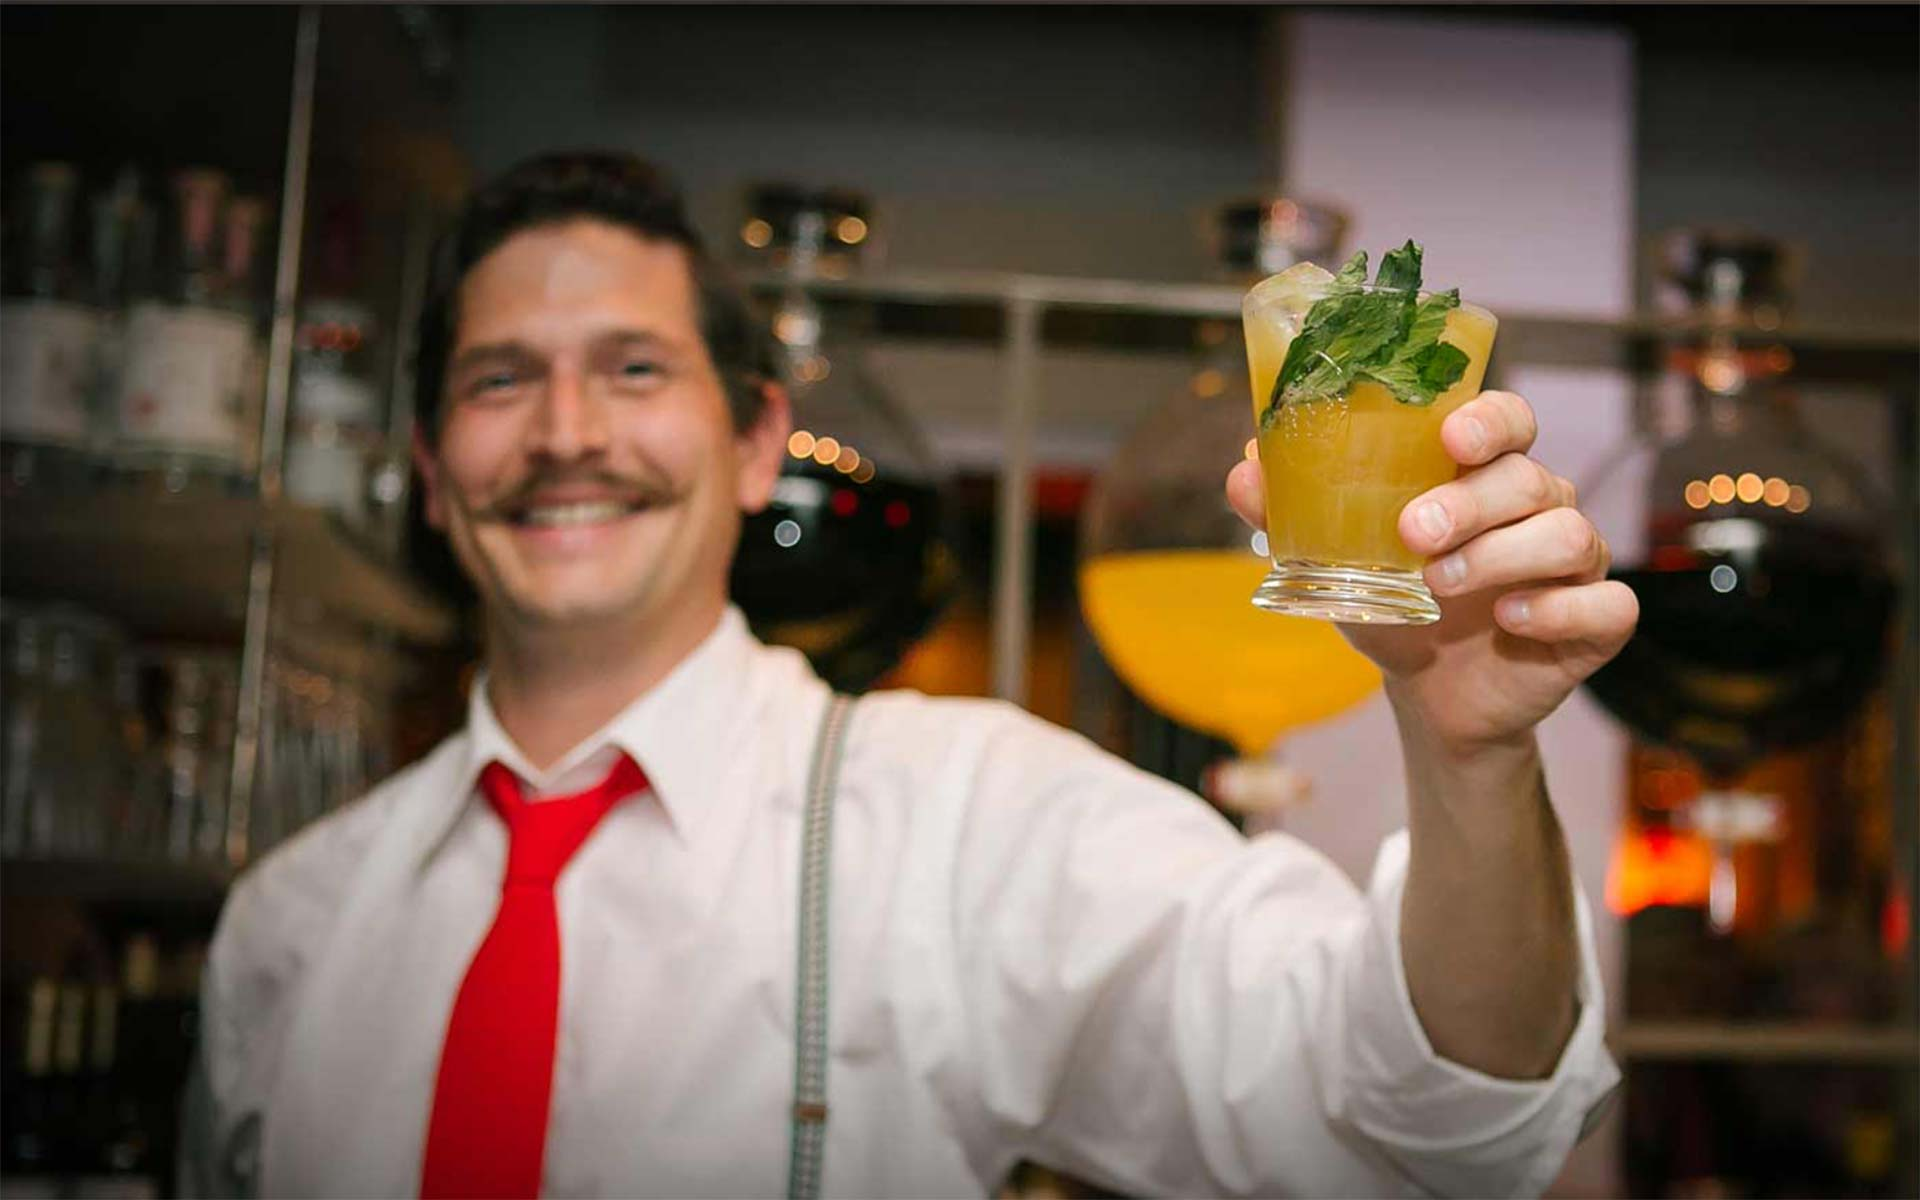 Continental bartender holding a drink